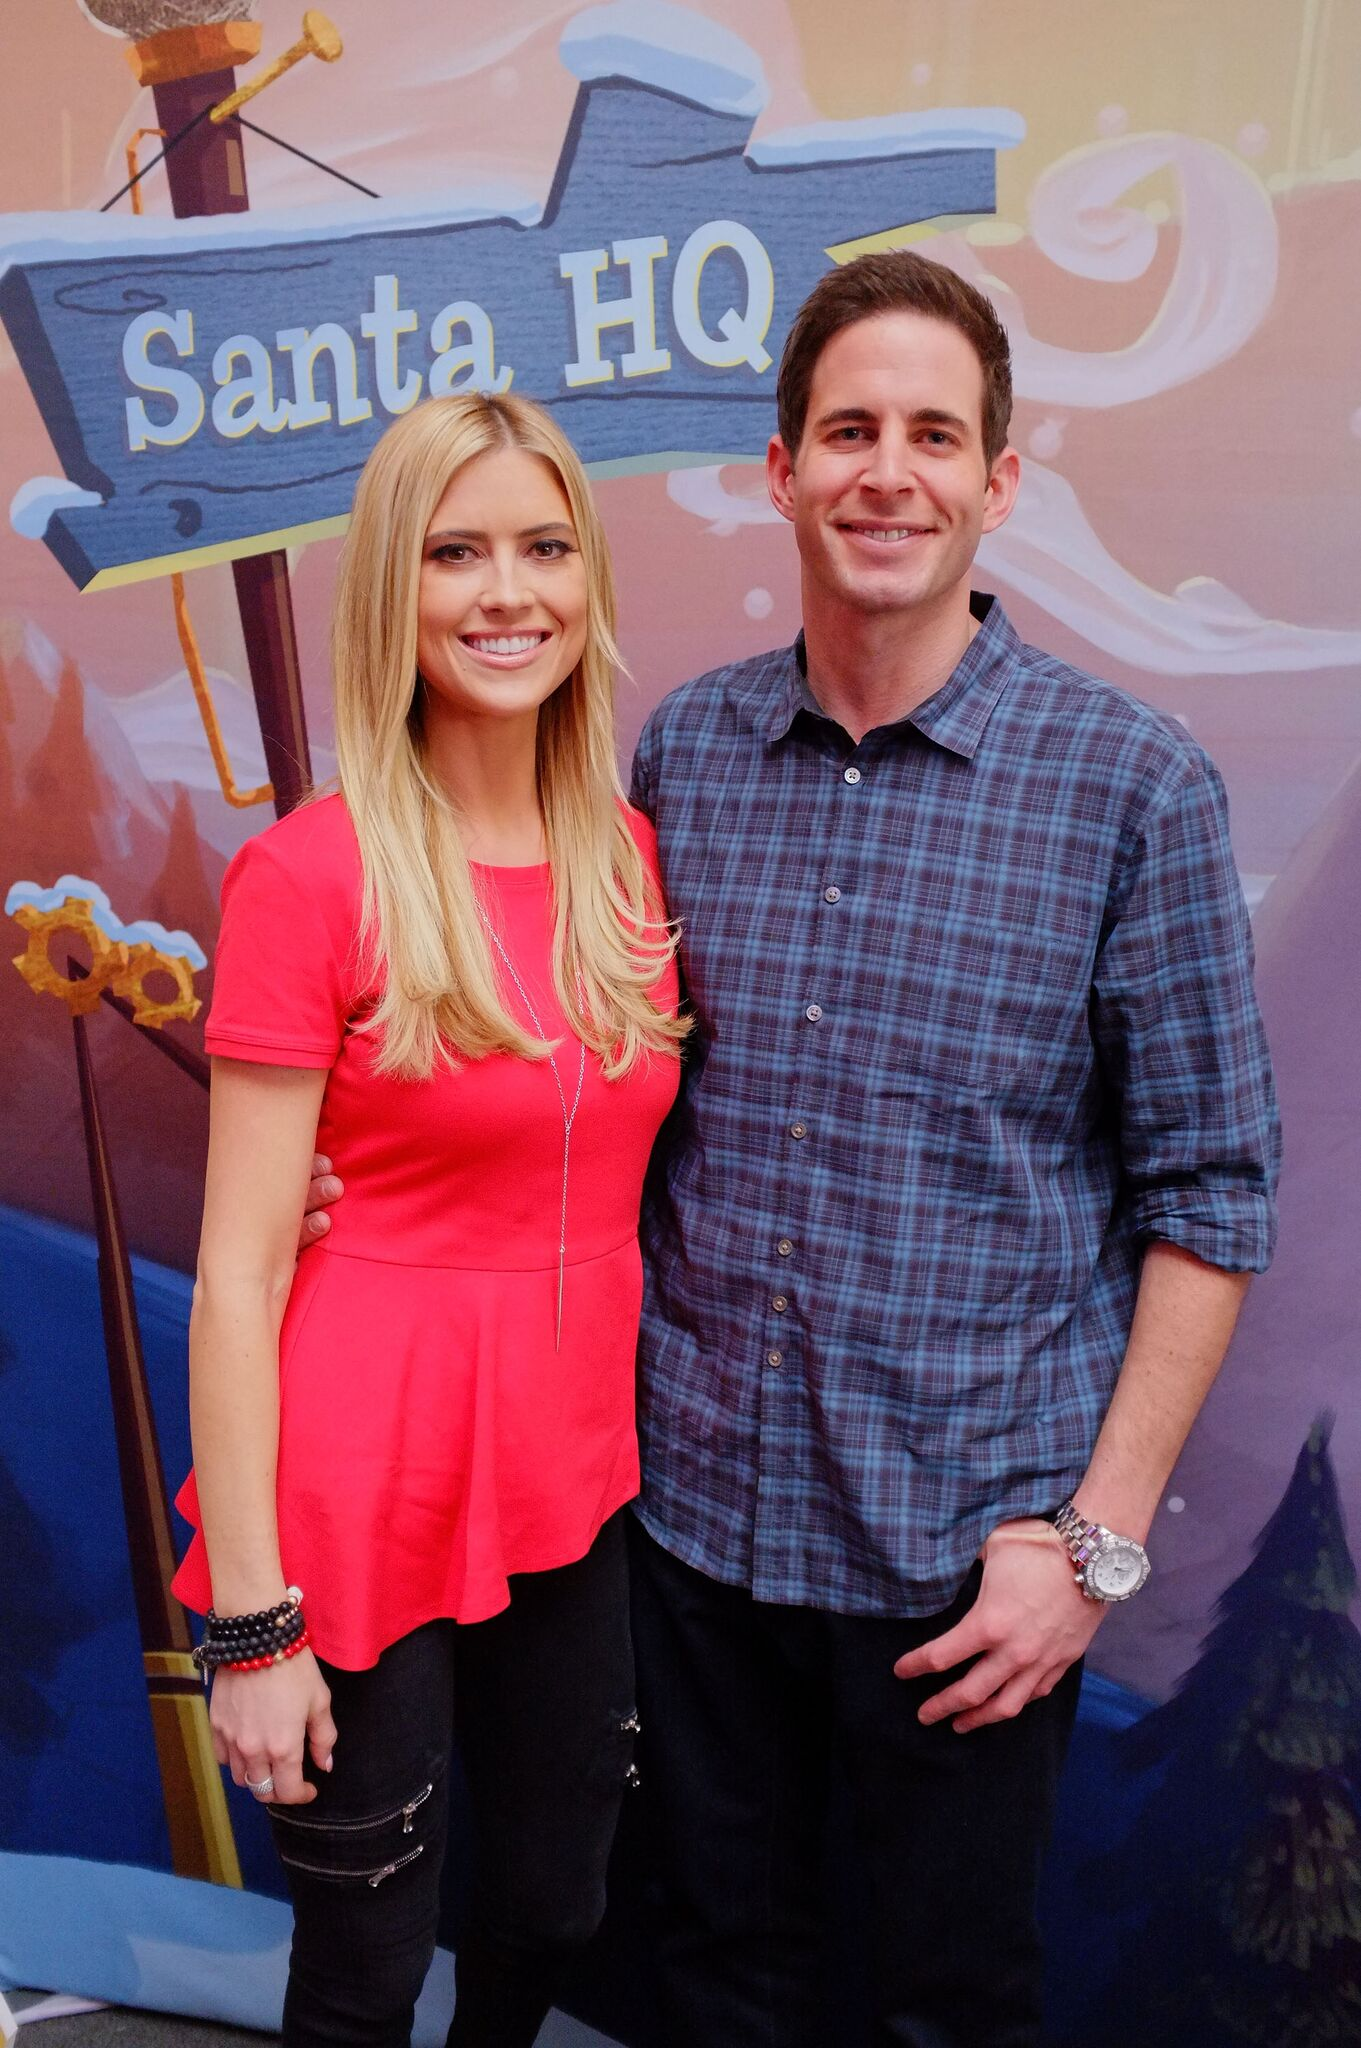 Tarek and Christina El Moussa visited the HGTV Santa HQ | Getty Images